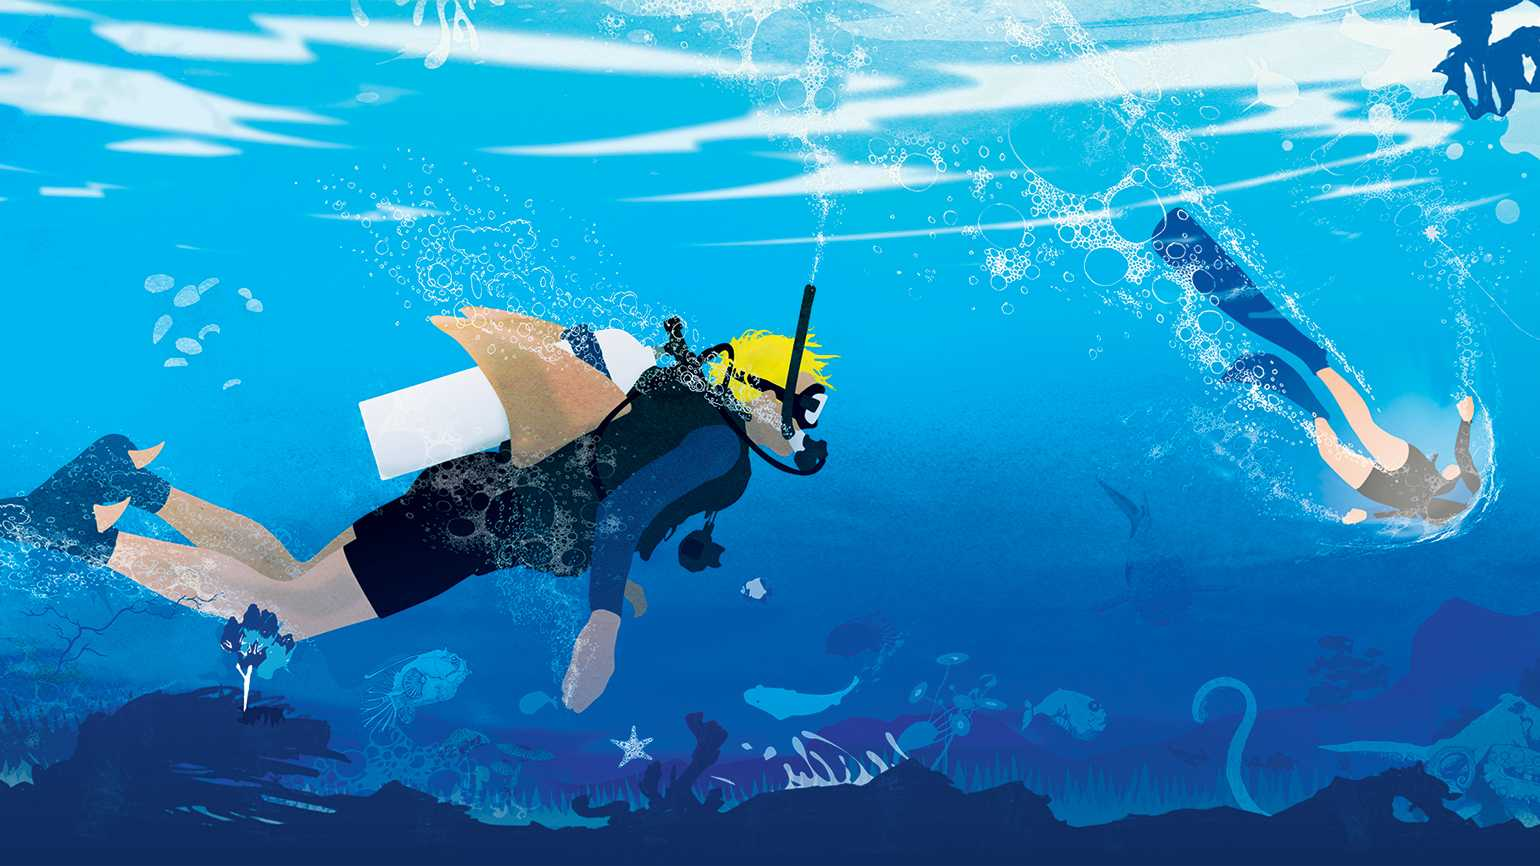 An artist's rendering of a pair of scuba divers underwater